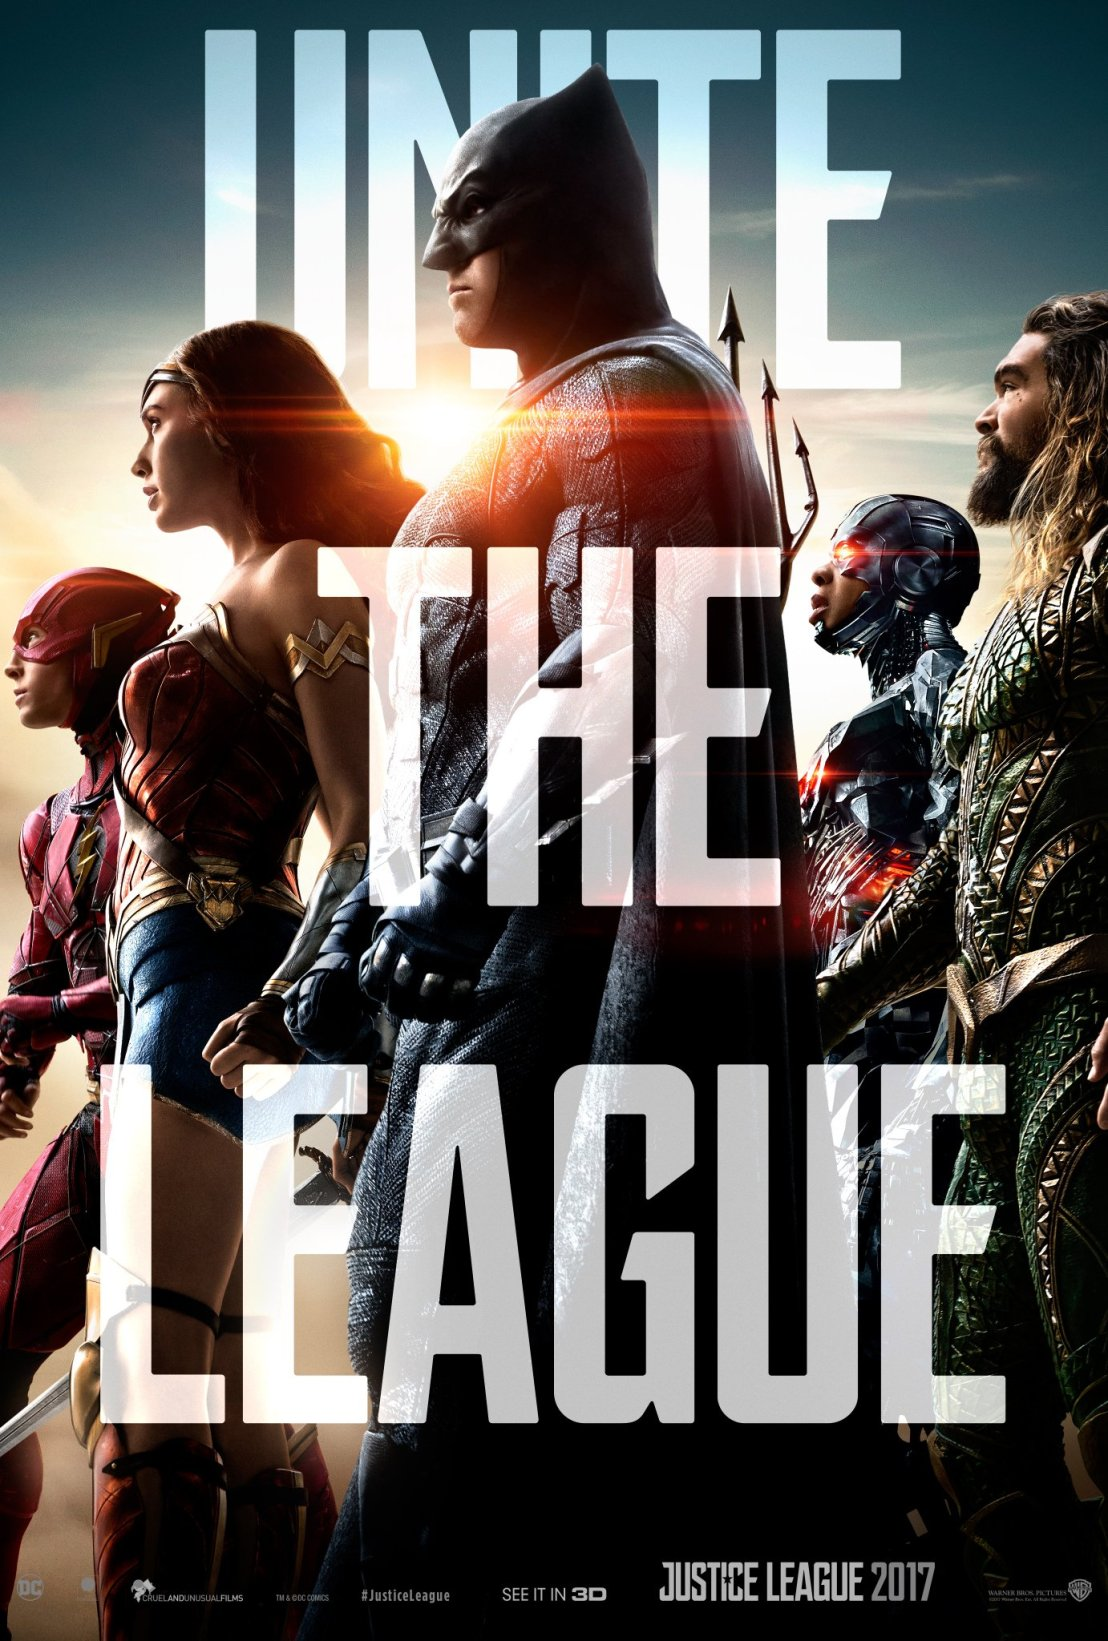 Justice League (2017) [1382 x 2048].jpeg